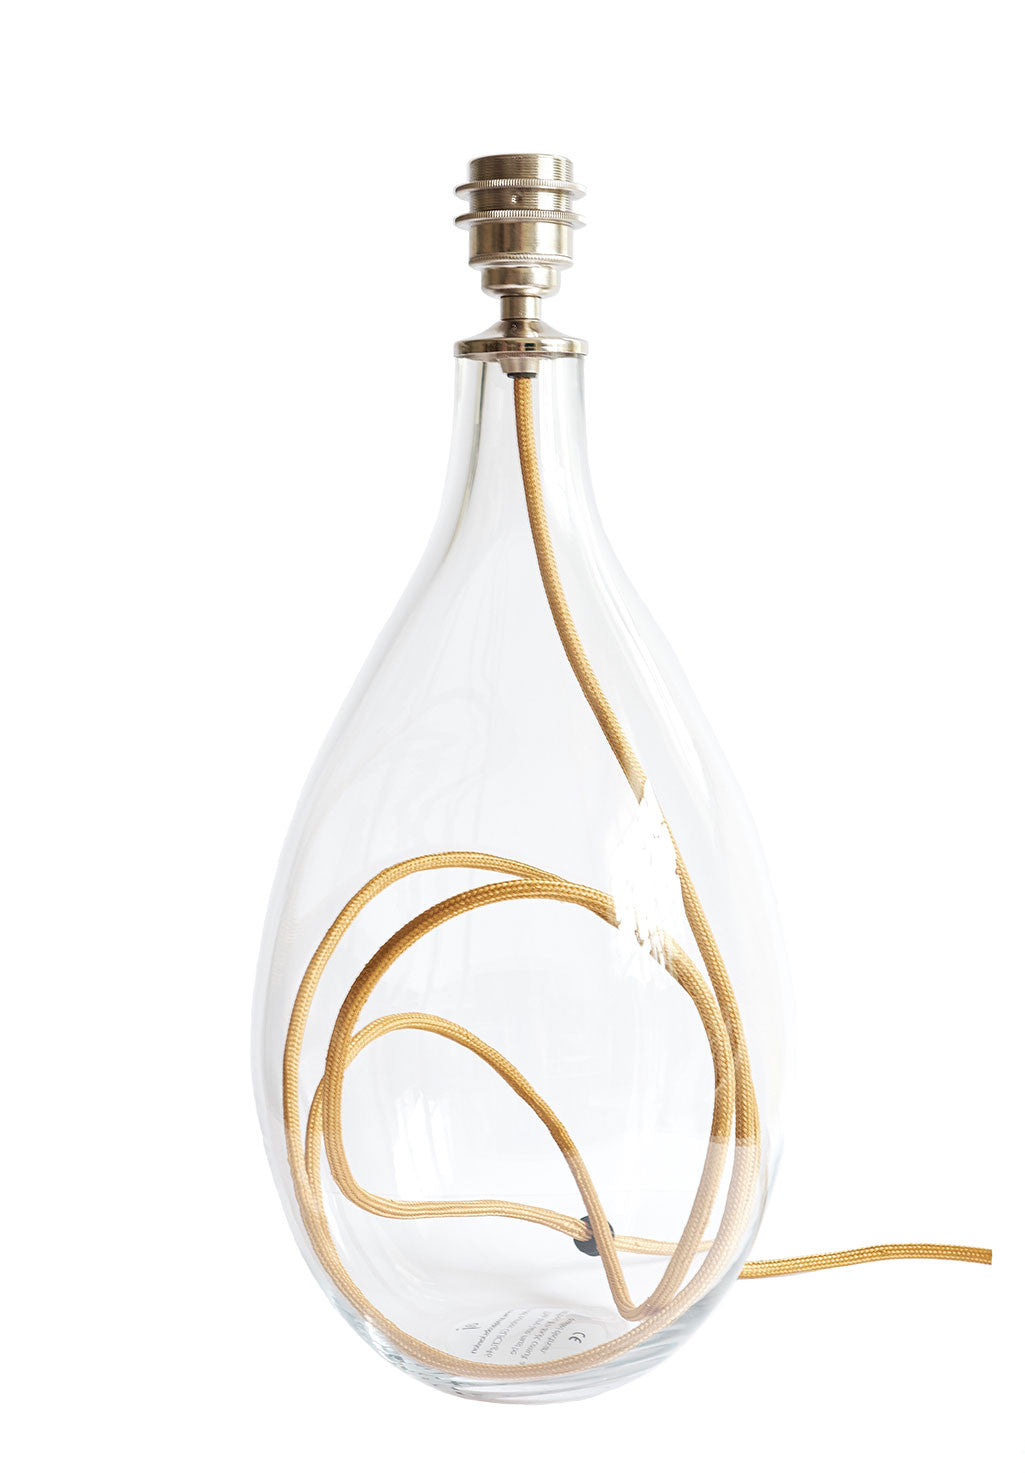 Burnished Gold flex lamp base<br />2 sizes